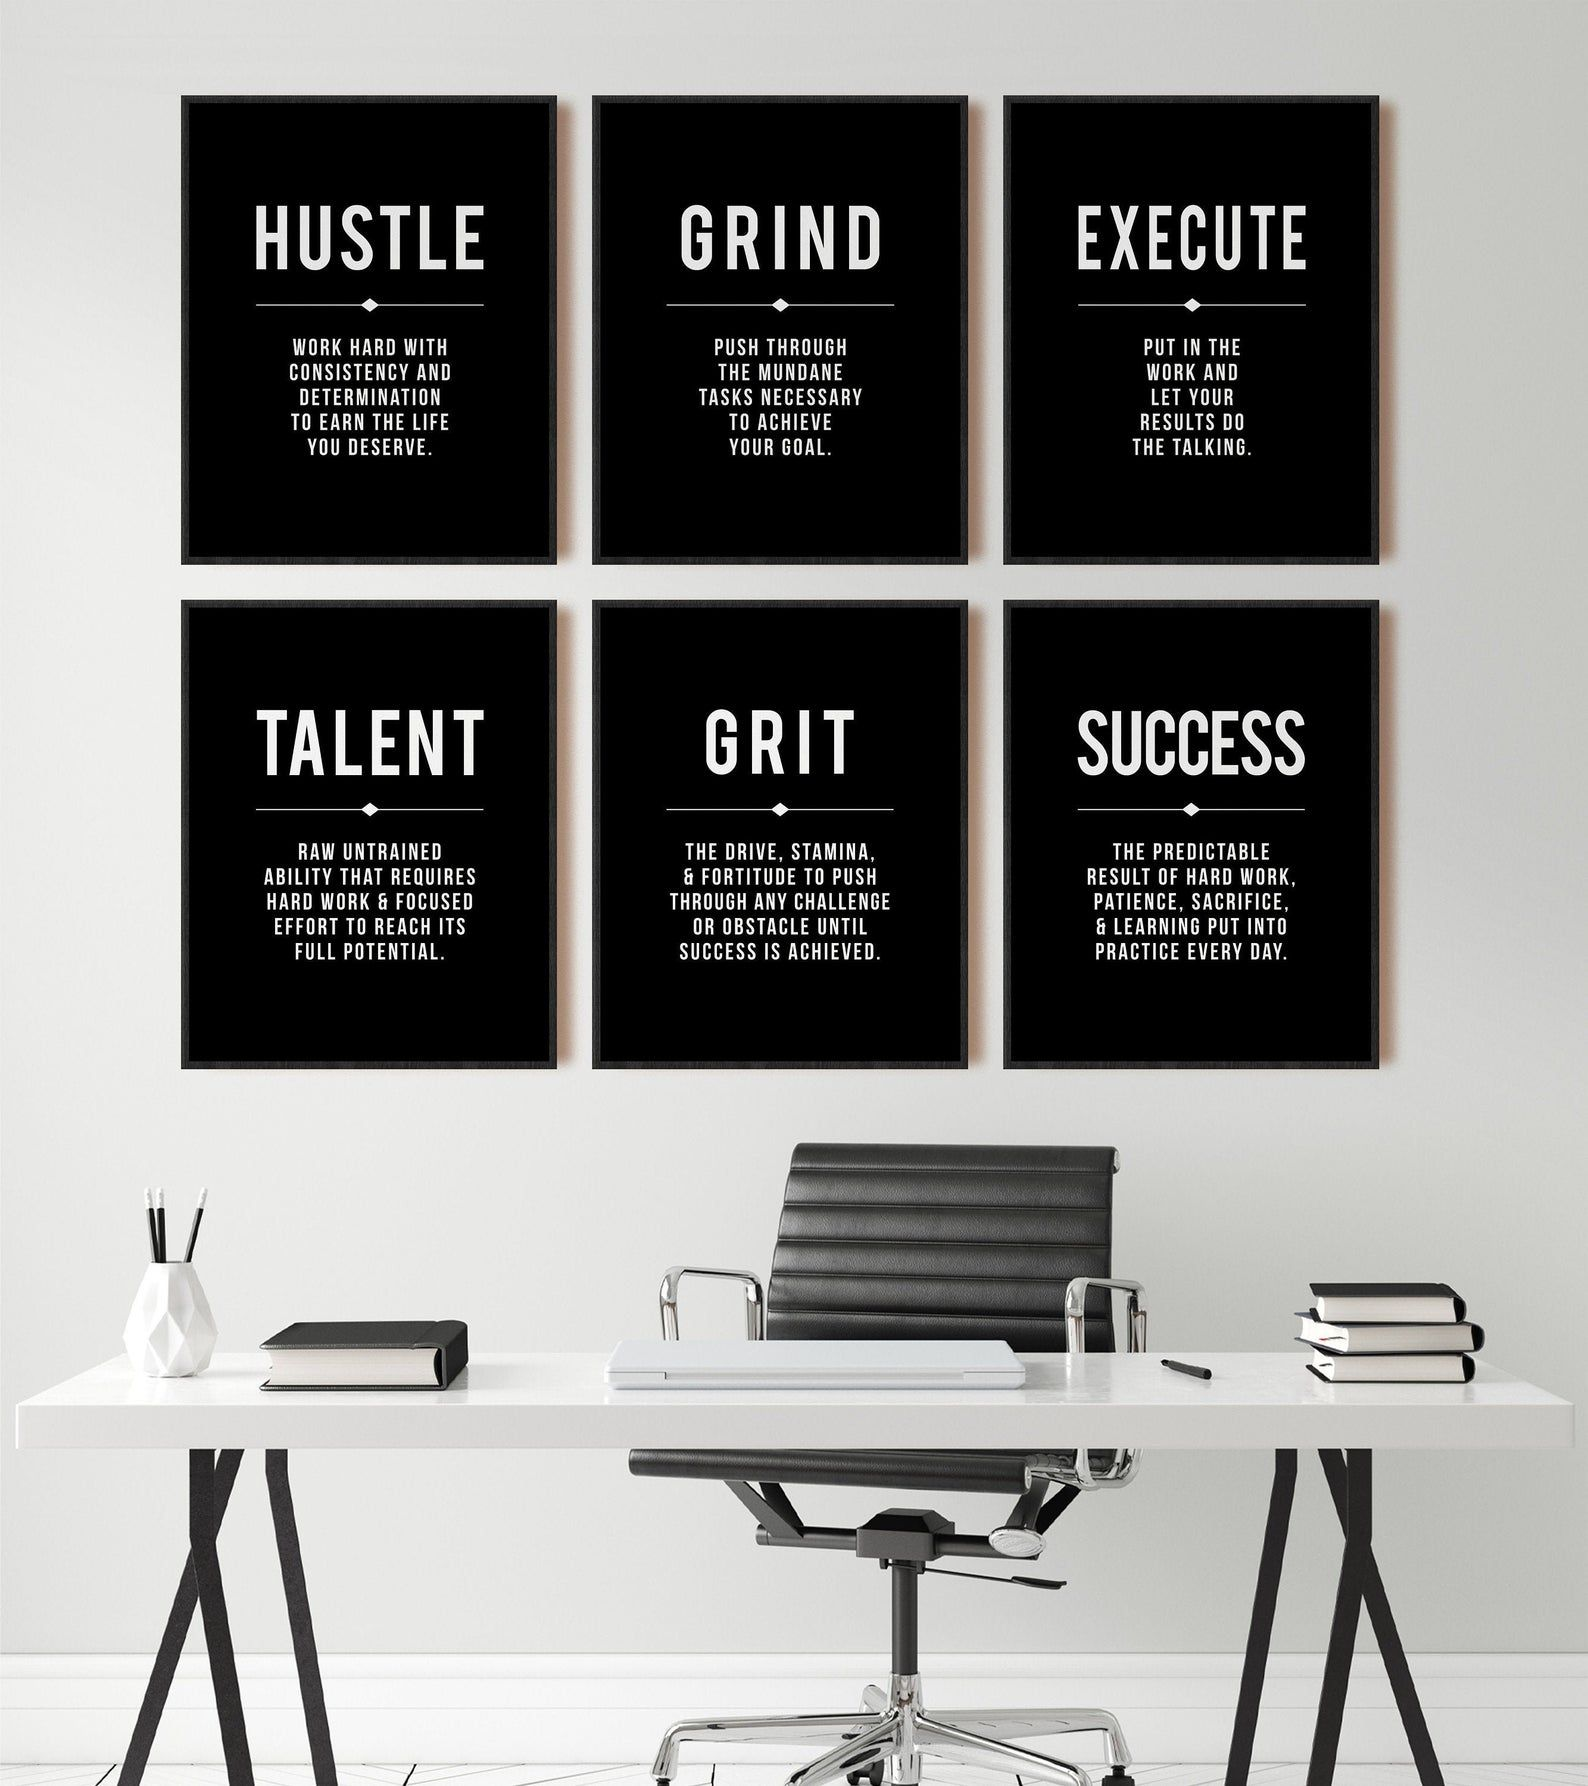 Minimalist Office Wall Art Hustle Success Talent Quote Motivational Wall Art Large Black Poster Inspirational Set Of 6 Prints Modern Office Decor Work Office Decor Minimalist Office